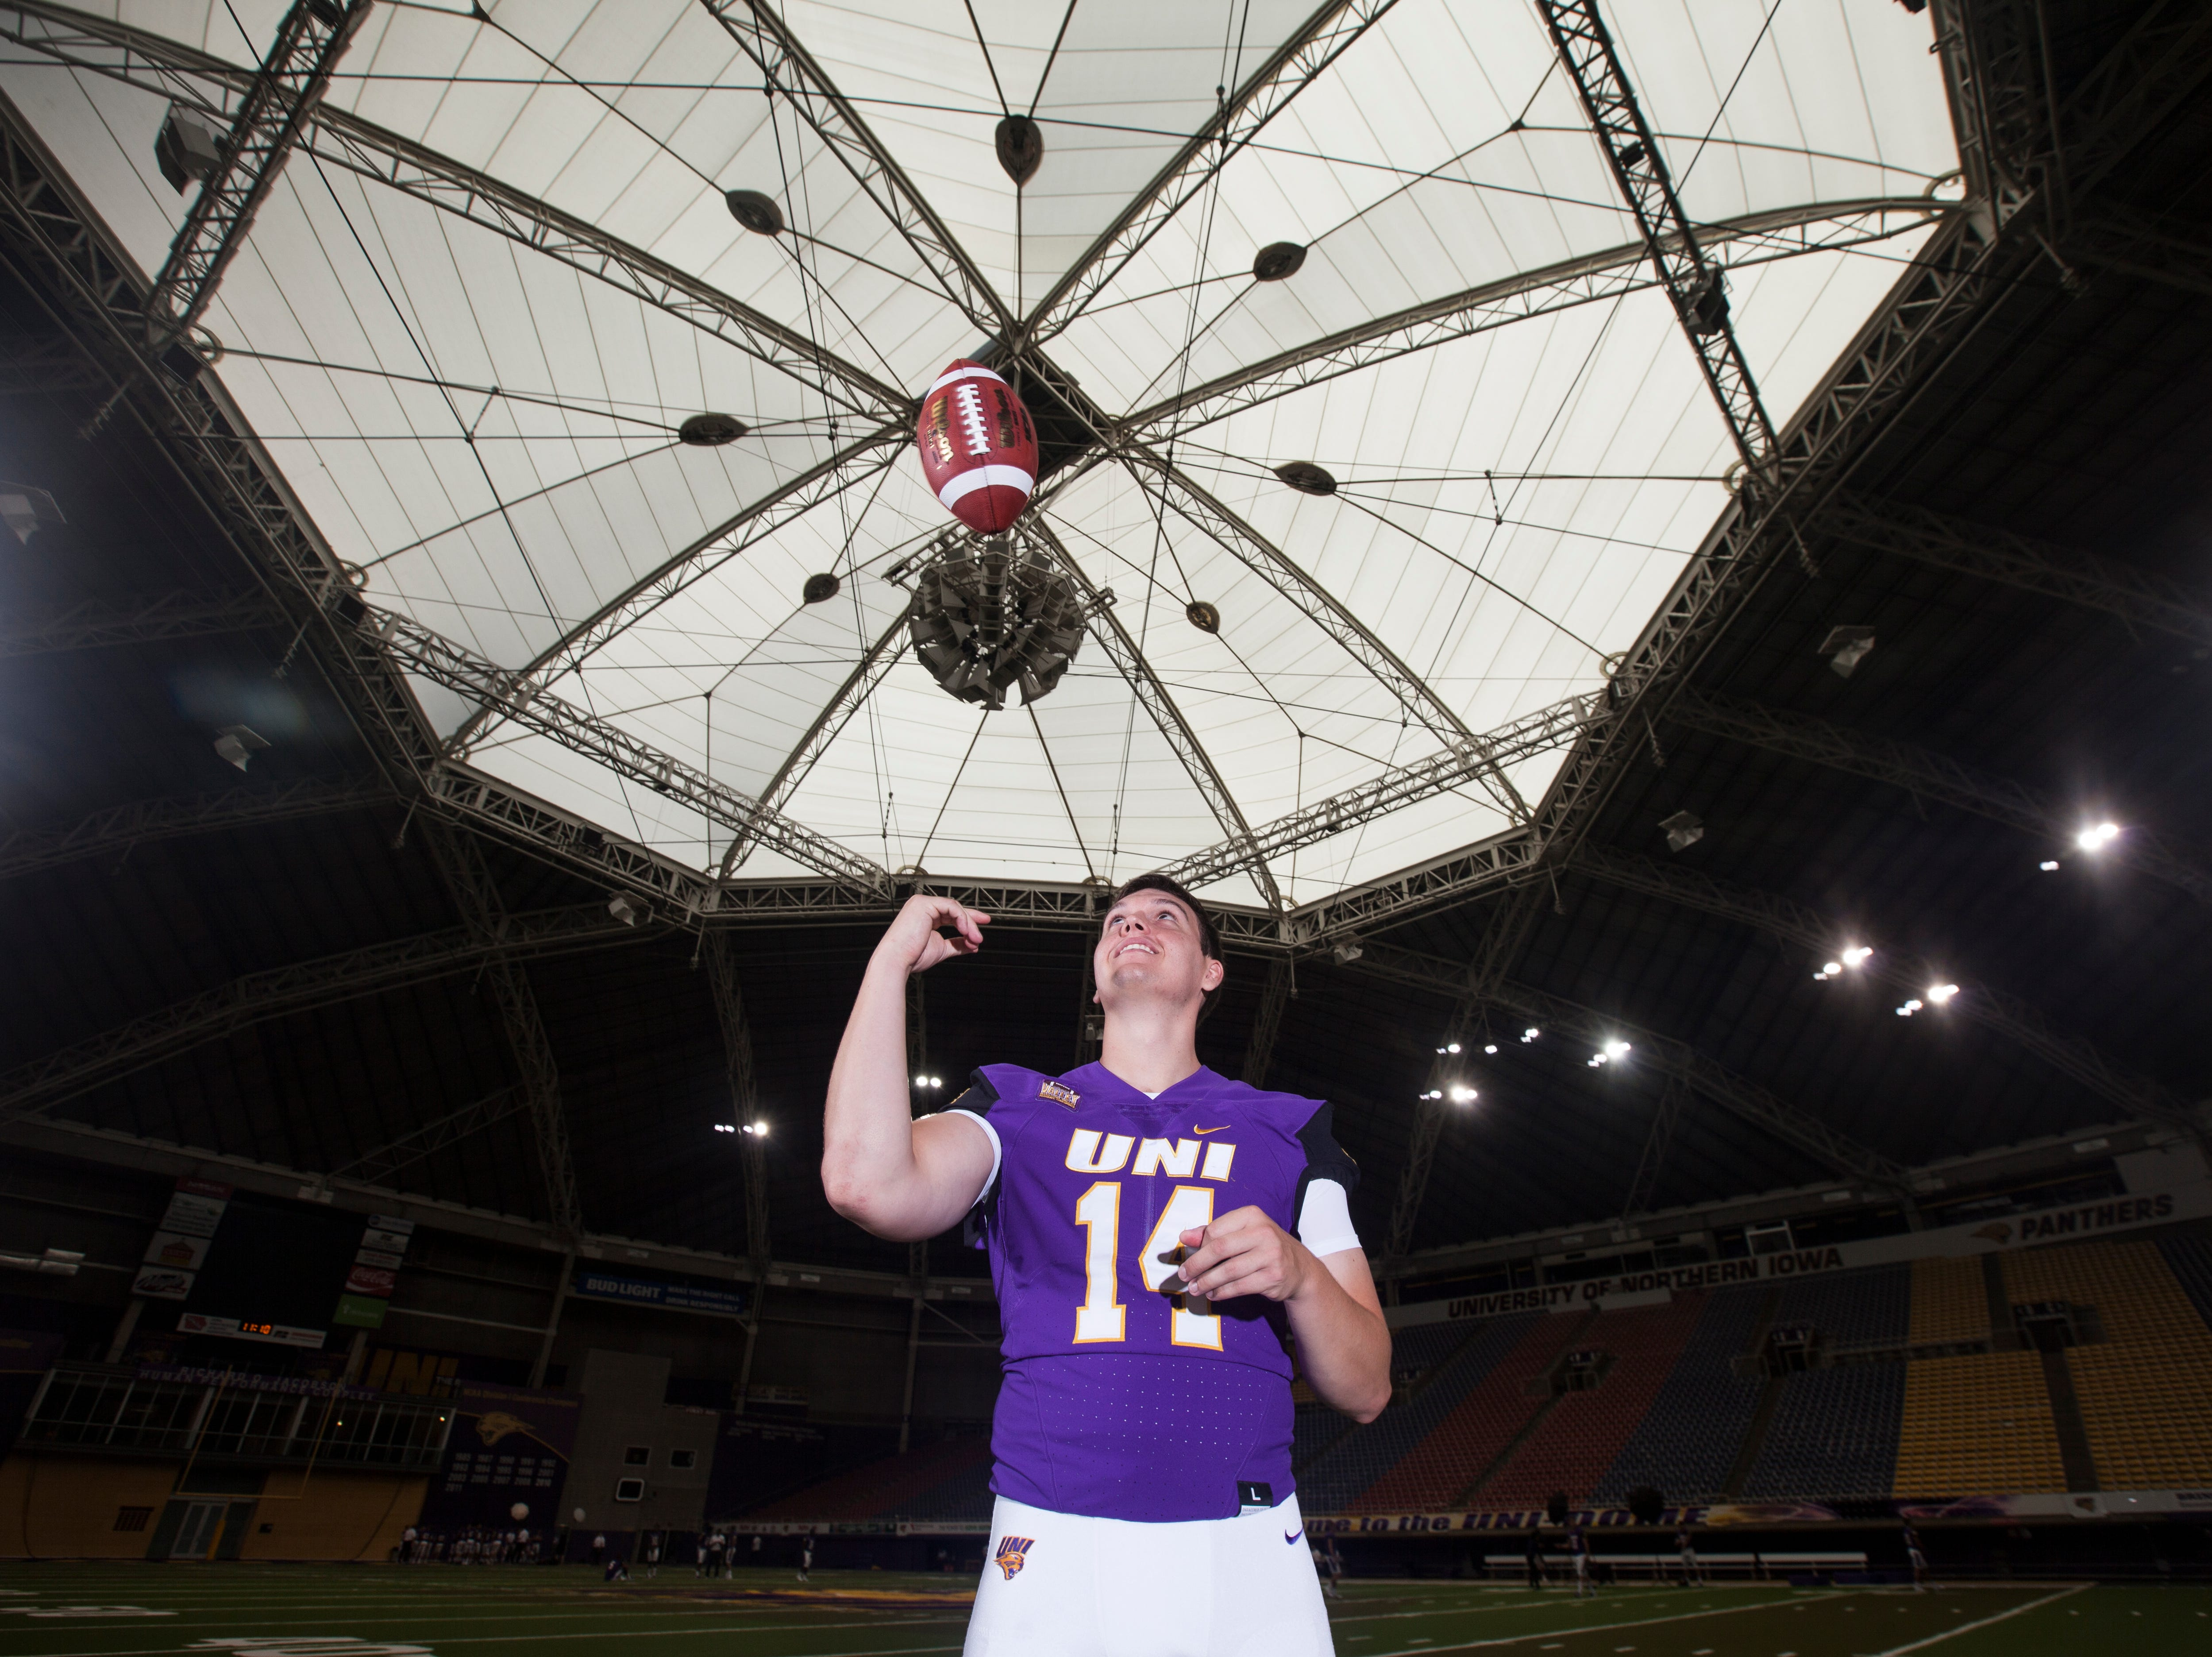 UNI quarterback Eli Dunne poses for a portrait during media day on Wednesday, Aug. 8, 2018, at the UNI-Dome in Cedar Falls, Iowa.